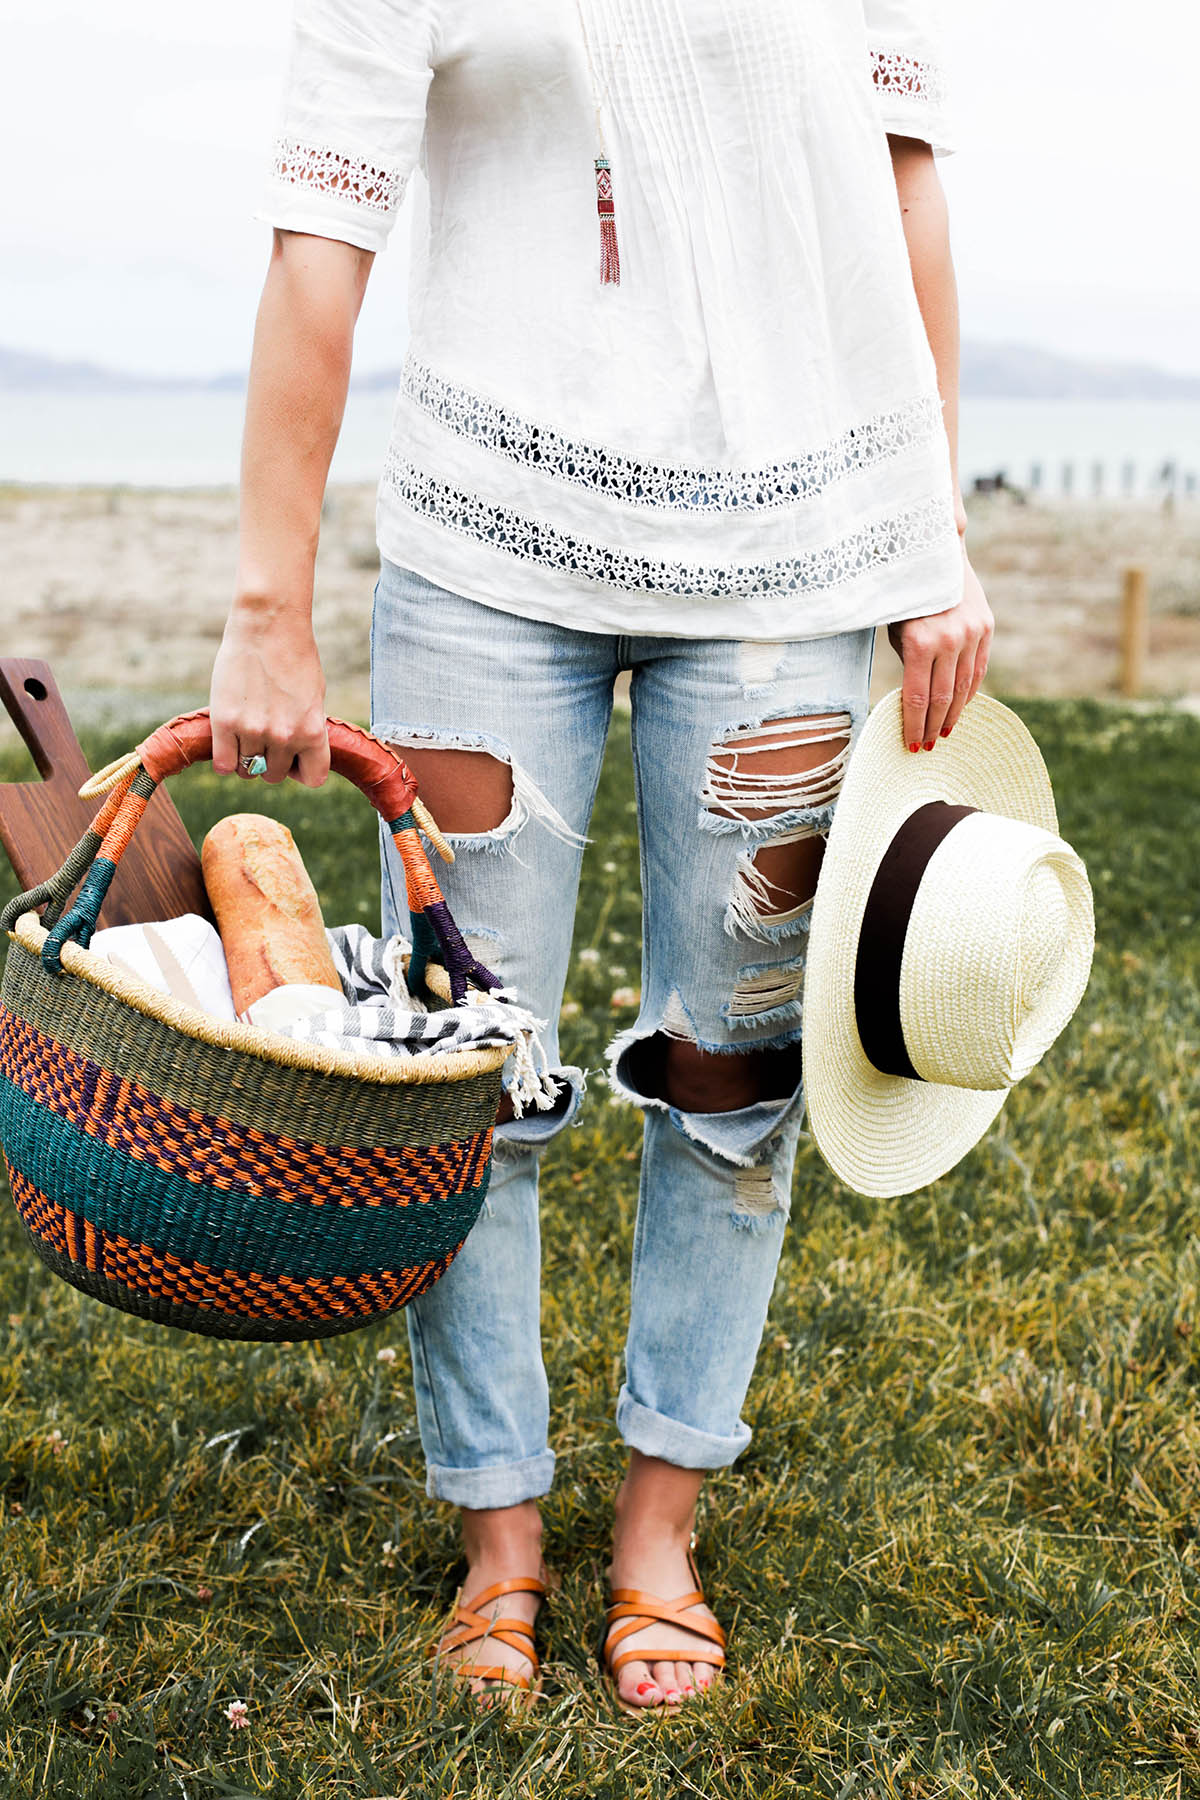 picnic basket with all the essentials for summer picnic at Crissy Field